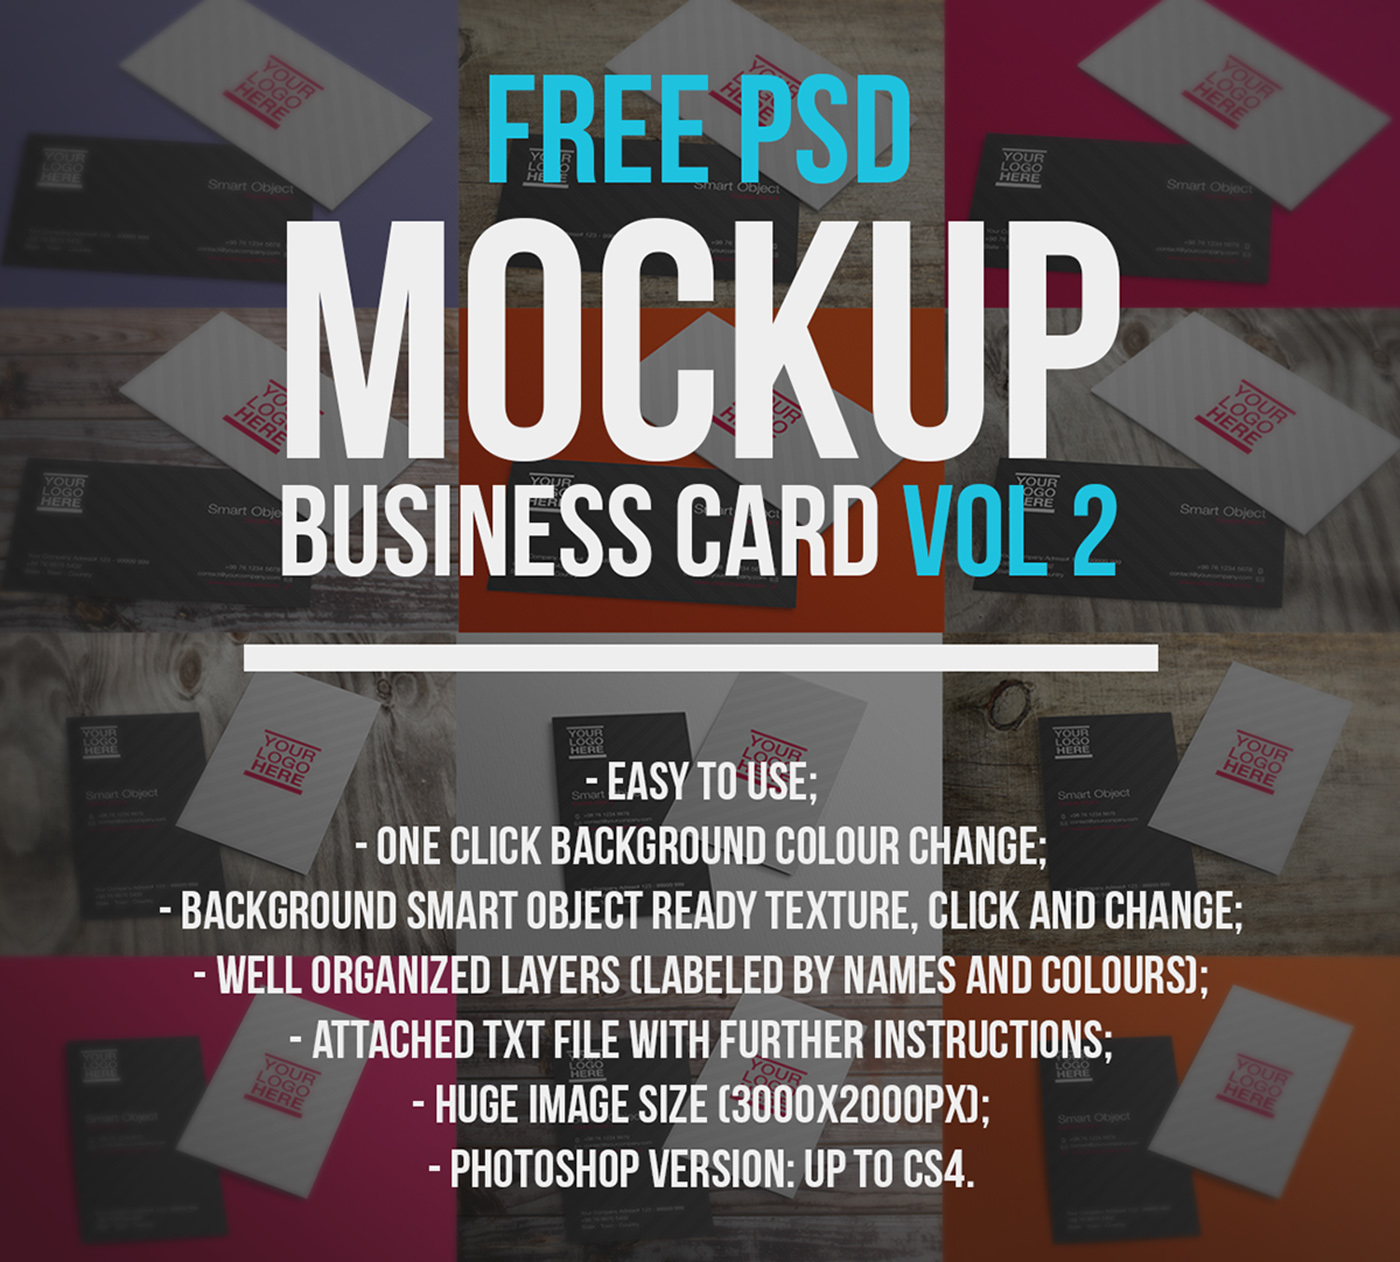 Free psd mockup business card vol 2 on behance reheart Gallery